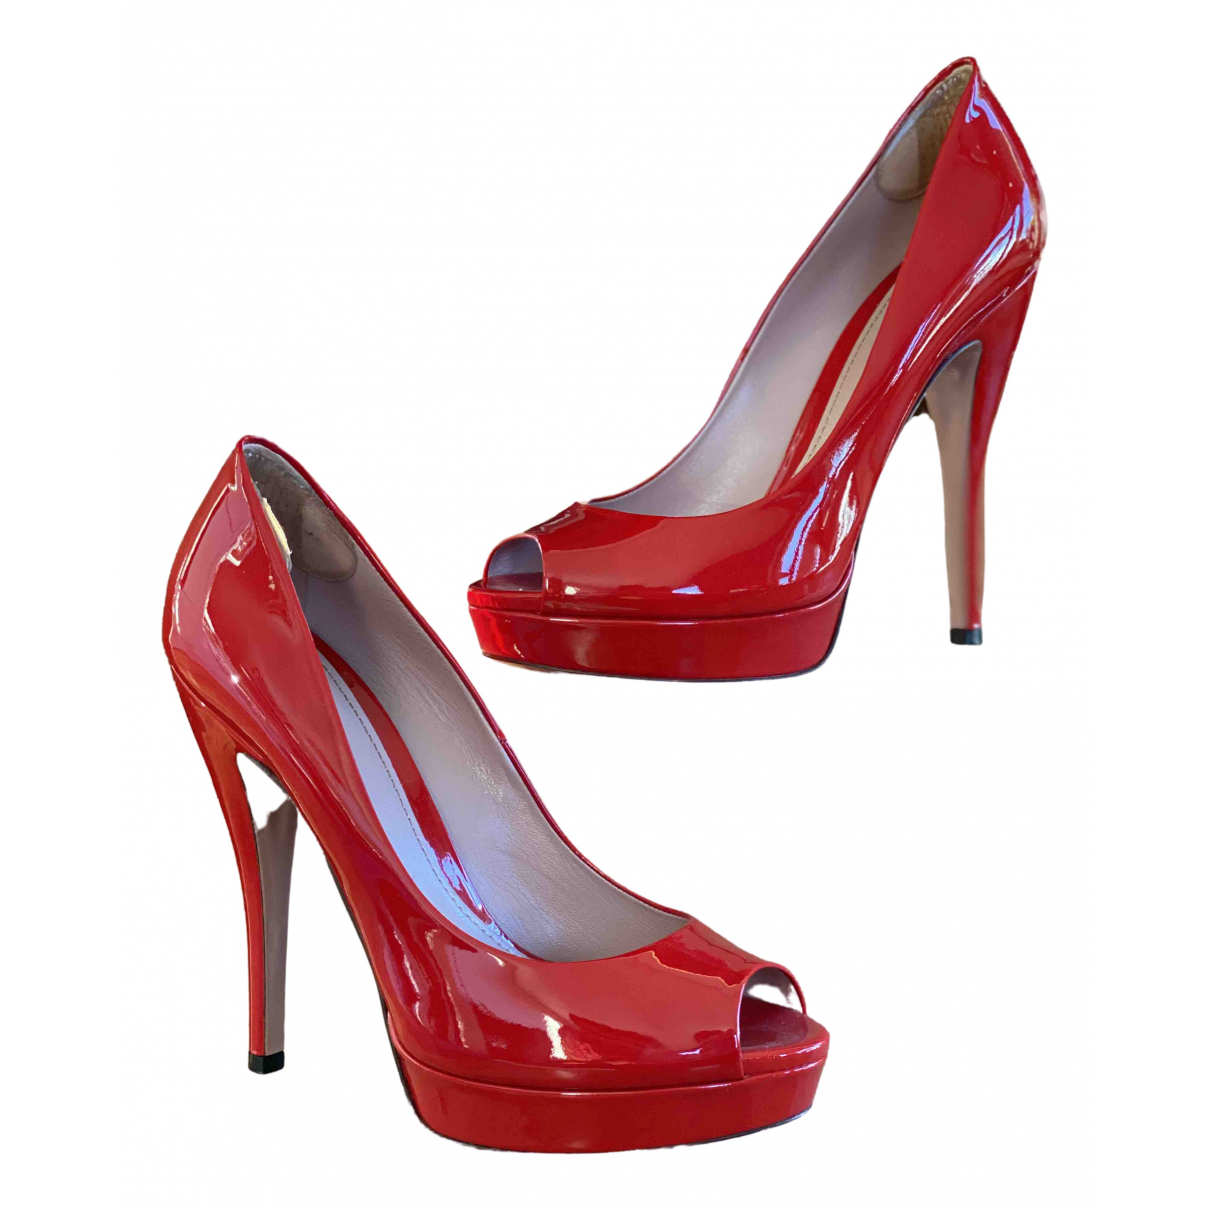 Gucci \N Red Patent leather Heels for Women 40 EU